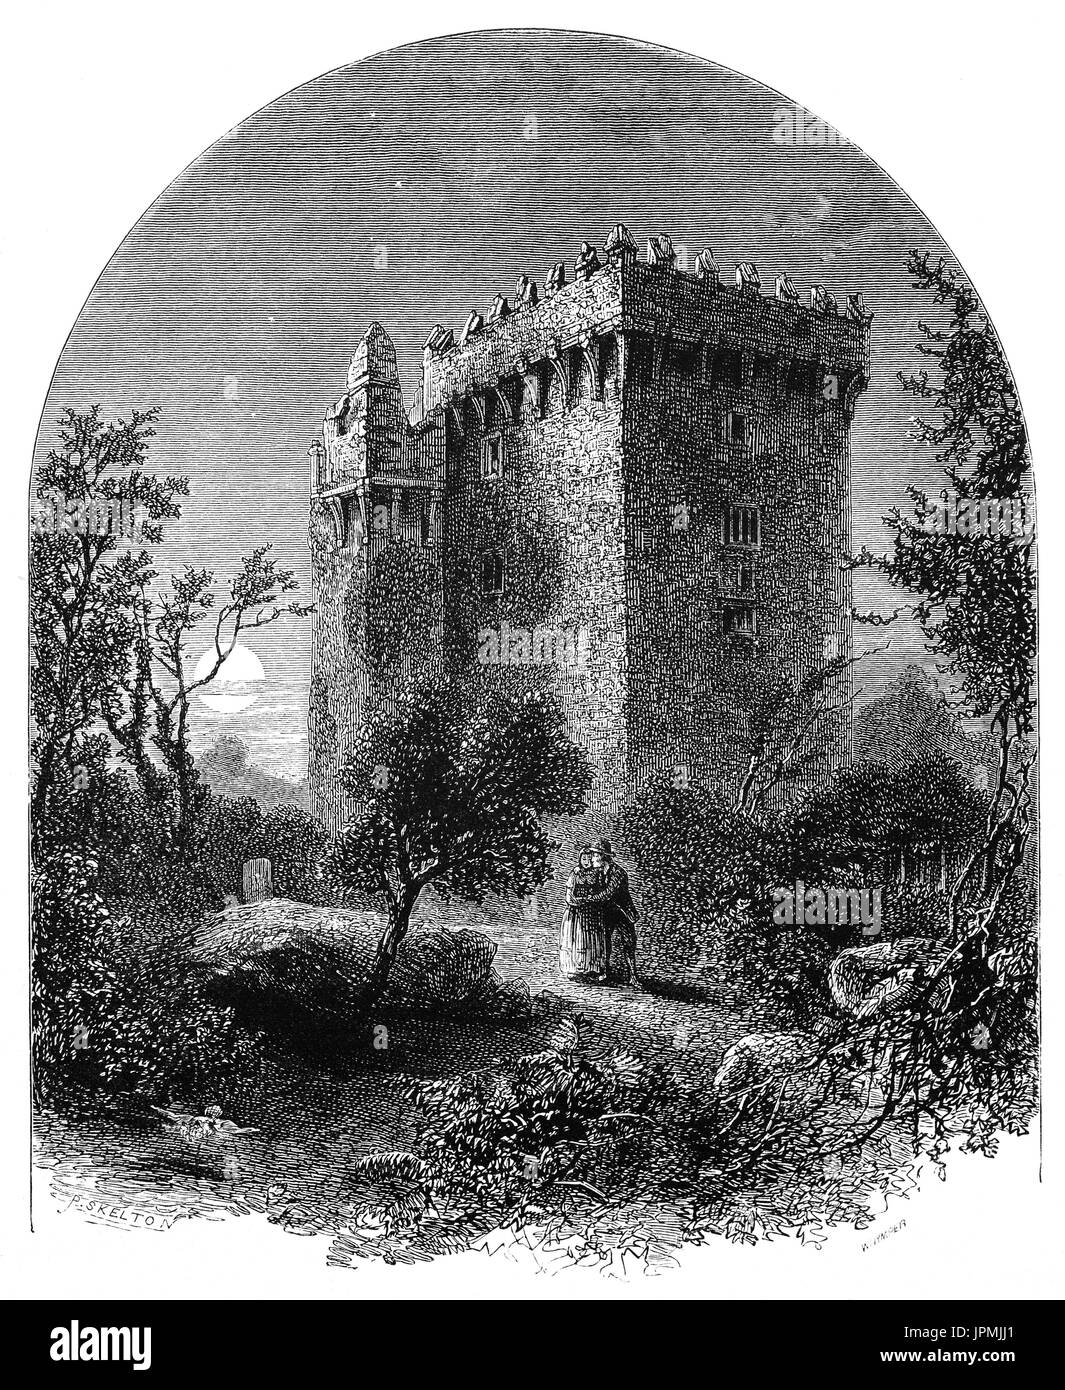 1870: Blarney Castle, a medieval stronghold in Blarney. The current keep was built by the MacCarthy of Muskerry dynasty, a cadet branch of the Kings of Desmond, and dates from 1446. The Blarney Stone where tourists visiting the castle may hang upside-down over a sheer drop to kiss the stone, which is said to give the gift of eloquence. is among the machicolations of the castle. County Cork, Ireland - Stock Image